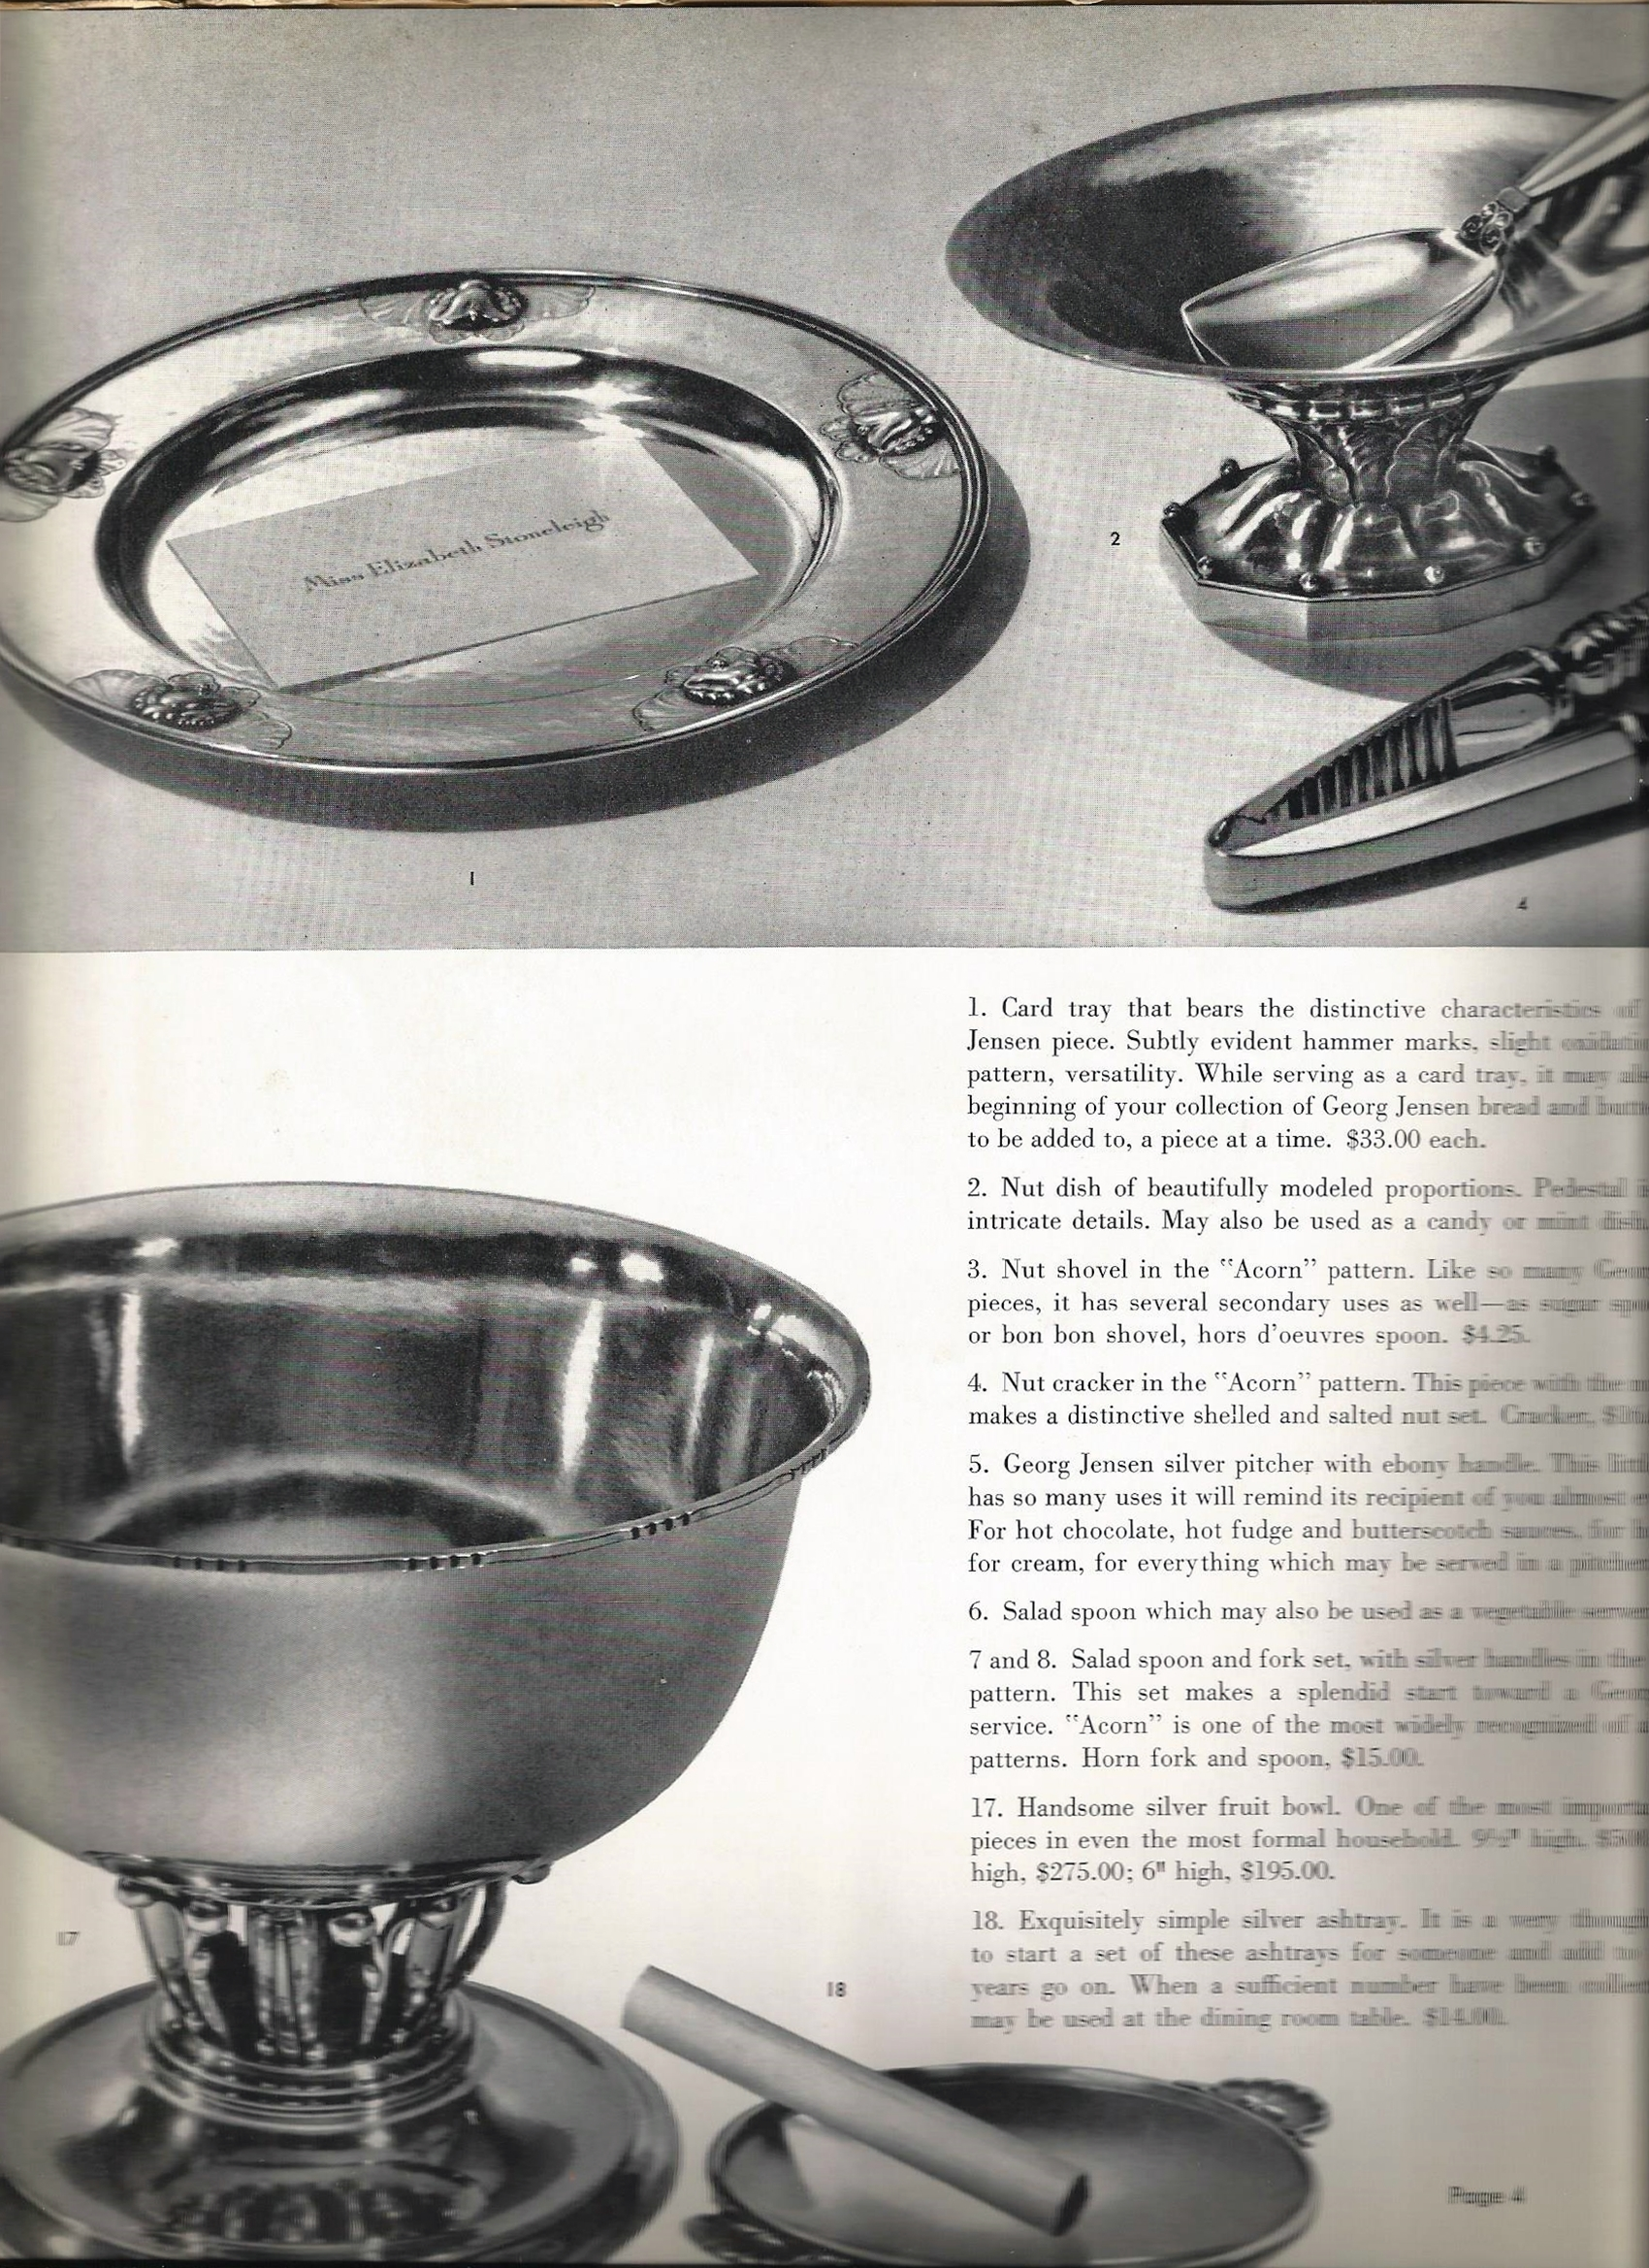 "Text is as follows: ""1. Card tray that bears the distinctive characteristics of a Georg Jensen piece. Subtly evident hammer marks, slight oxidation of the pattern, versatility. While serving as a card tray, it may also be the beginning of your collection of Georg Jensen bread and butter plates, to be added to, a piece at a time. $33.00 each.  2. Nut dish of beautifully modeled proportions. Pedestal is rich in intricate details. May also serve as a candy or mint dish. $35.00  3. Nut shovel in the ""Acorn"" pattern. Like so many Georg Jensen pieces, it has secondary uses as well - as a sugar spoon, mint or bon bon shovel, hors d'oeuvres spoon. $4.25.  4. Nut cracker in the ""Acorn"" pattern. This piece with the nut shovel make a distinctive shelled and salted nut set. Cracker, $16.00.  5. Georg Jensen silver p[itcher with ebony handle. This little pitcher has so many uses it will remind its recipient of you almost every day. For hot chocolate, hot fudge and butterscotch sauces, for hot water, for cream, for every thing that can be served in a pitcher, $45.00.  6 Salad spoon which may also be used as a vegetable server, $18.00.  7 and 8. Salad spoon and fork set, with silver handles in the ""Acorn"" pattern. This set makes a splendid start toward a Georg Jensen service. ""Acorn"" is one of the most widely recognized of all Jensen patterns. Horn for and spoon, $15.00.  17. Handsome silver fruit bowl. One of the most important single pieces in even the most formal household. 9 1/2"" high, $195.00.  18. Exquisitely simple silver ashtray. it is a very thoughtful idea to start a set of these ashtrays for someone and add to it as the years go on. When a sufficient number has been collected, they may be used at the dining room table. $14.00."""